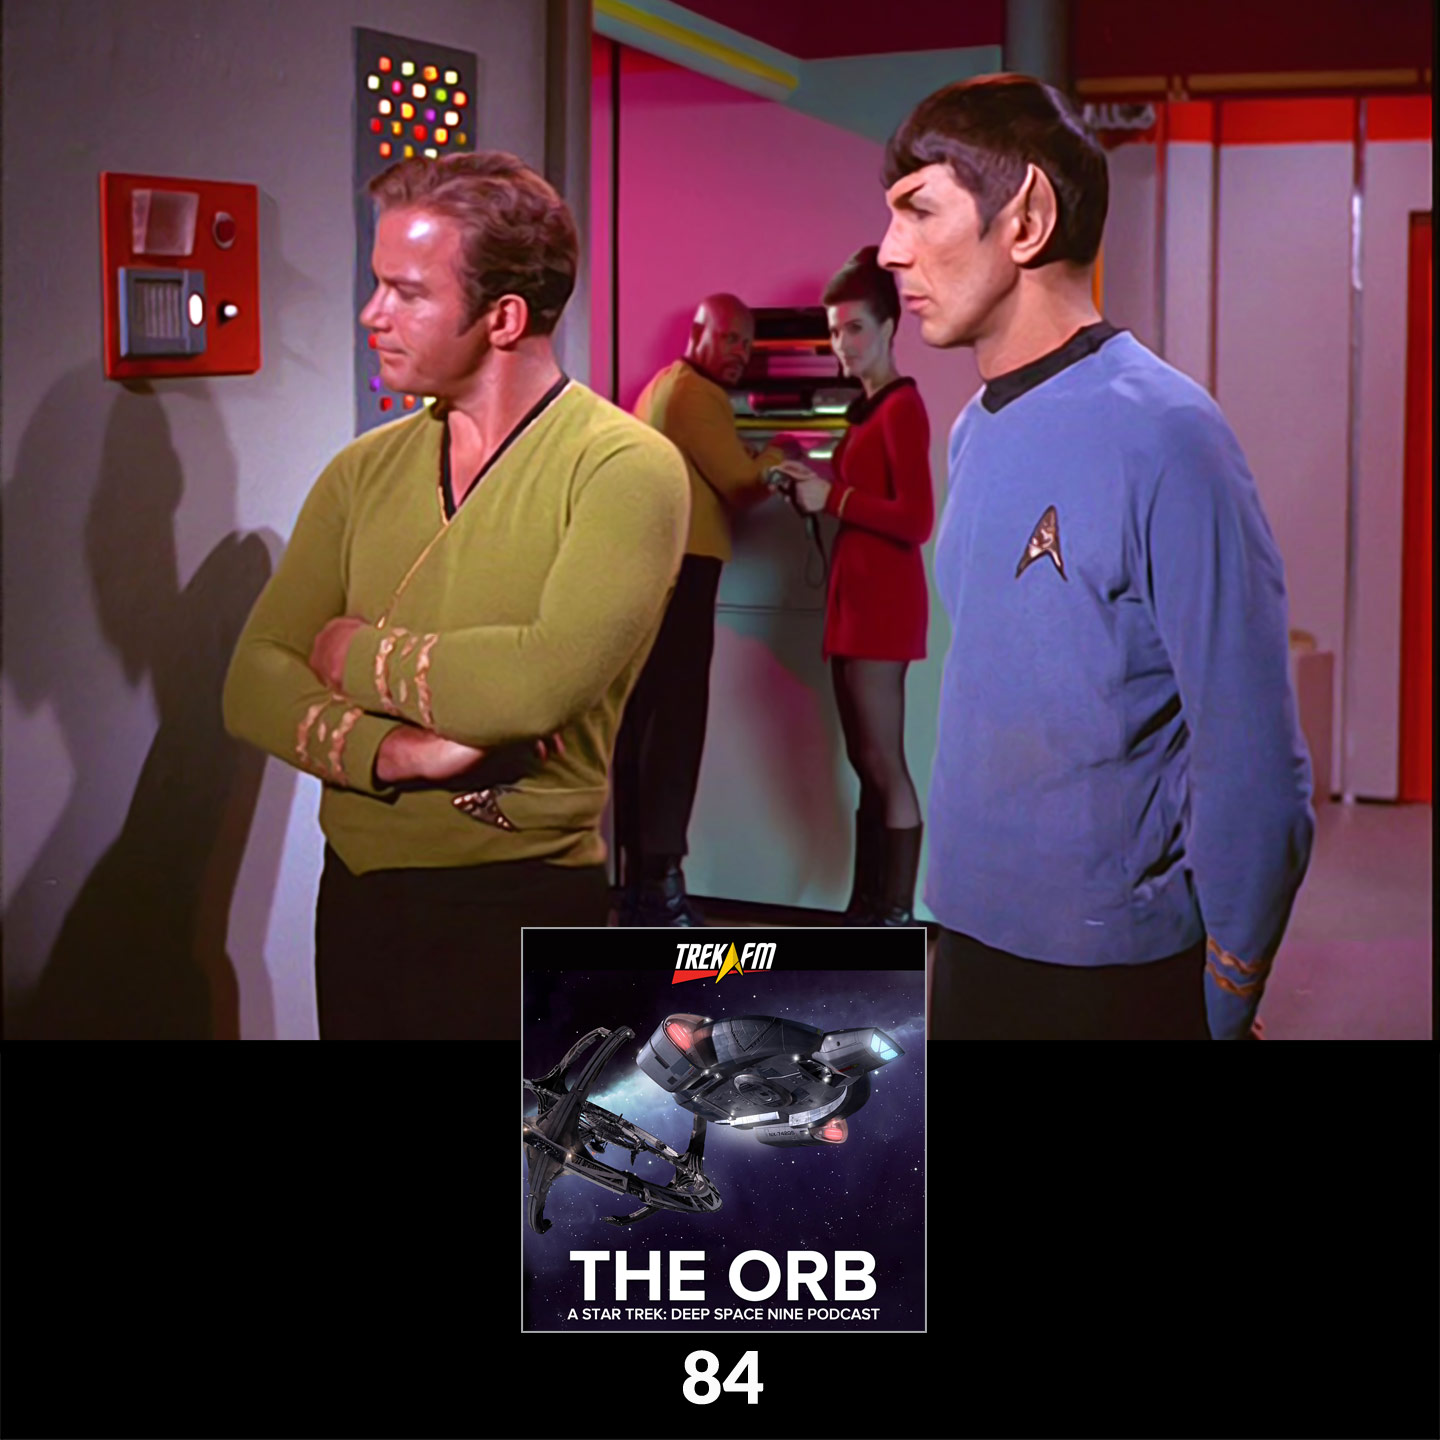 The Orb 84: There Are Always Possibilities